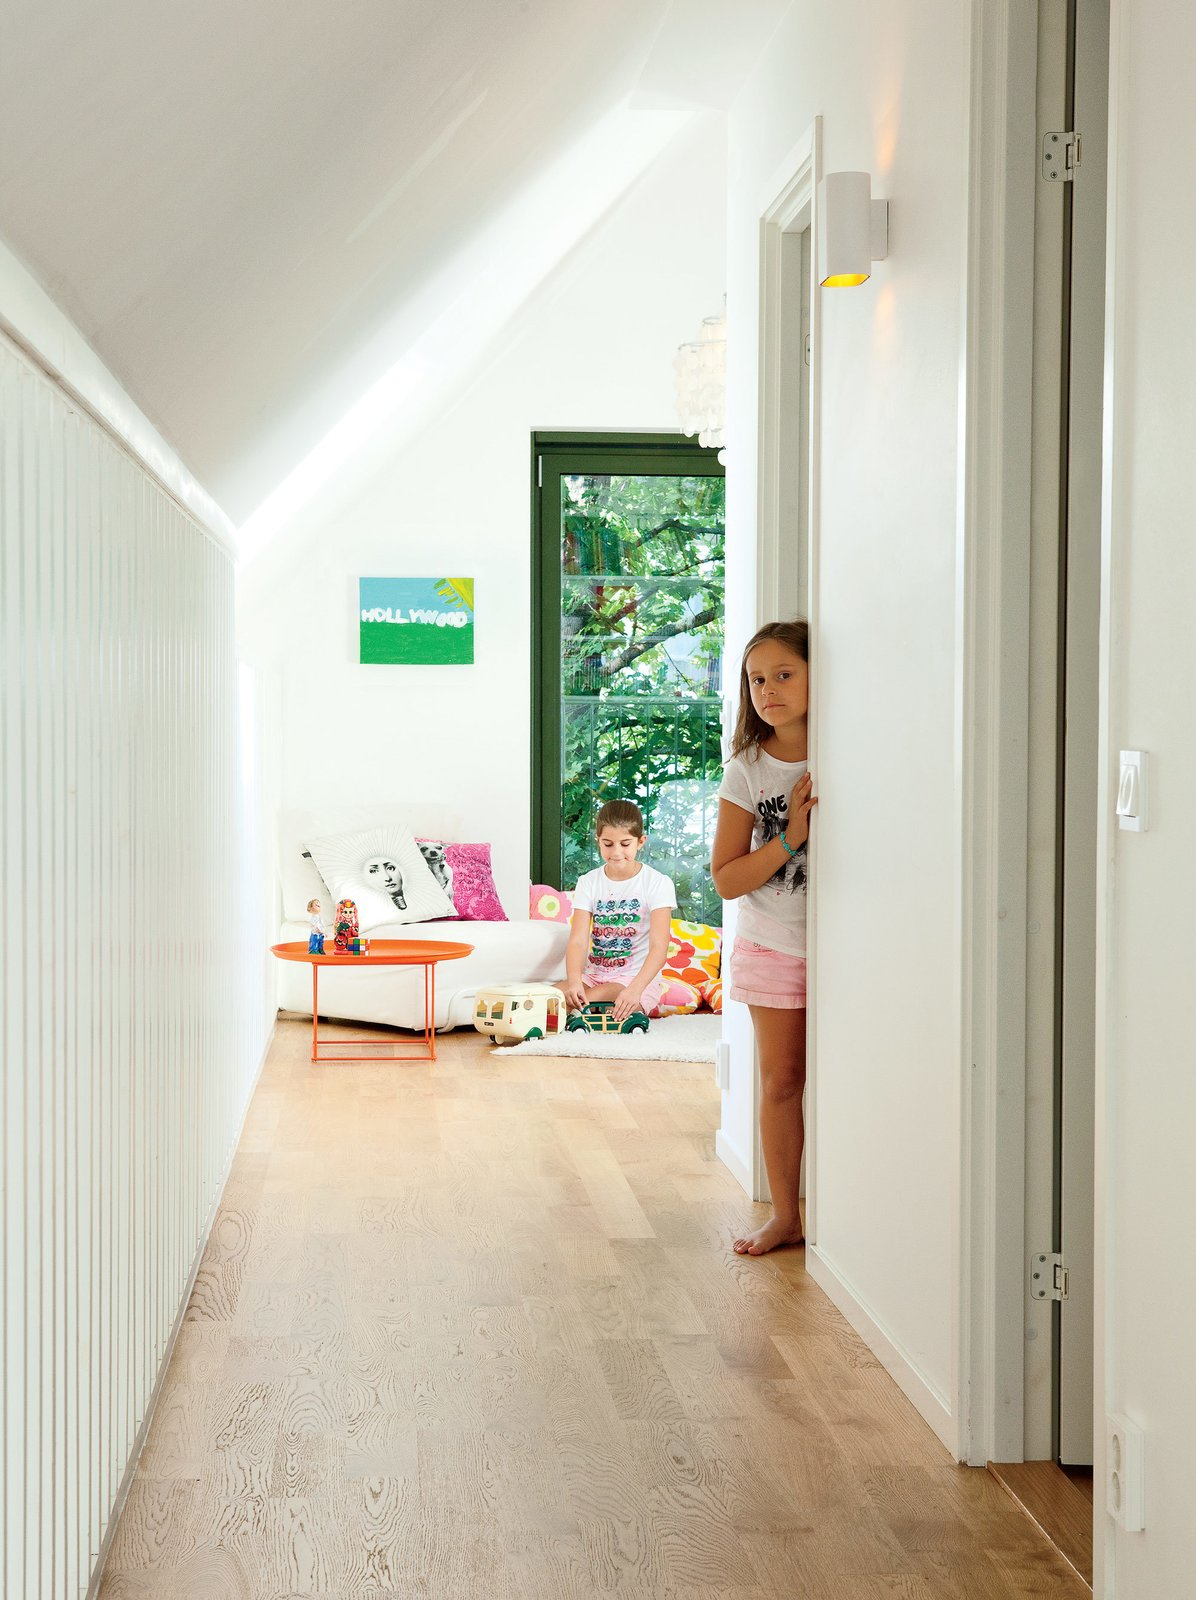 Kids Room and Bedroom Room Type The second floor holds three bedrooms and a living area for the girls. Here, Paula, 11, and Sofia, 9, hang out near an IKEA PS 2012 sofa by Nike Karlsson. The slatted wall at left allows a view to the downstairs.  Best Photos from This Bright Green Prefab in Sweden Looks Just Like a Monopoly House